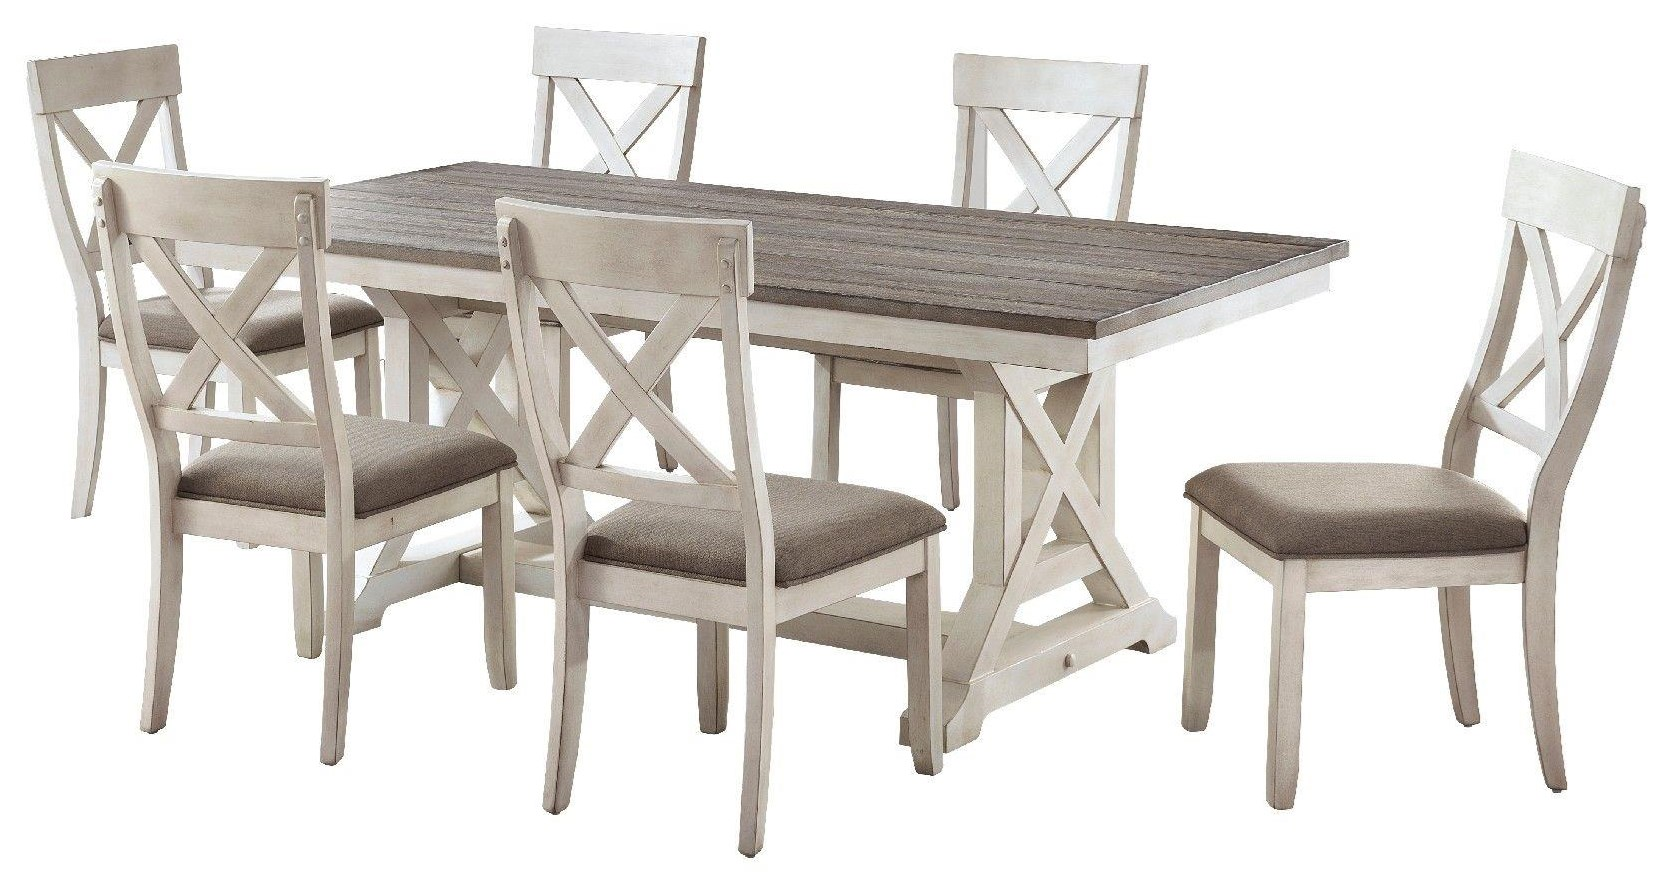 Bar Harbor II RECTANGLE TABLE And 4 SIDE CHAIR by Coast to Coast Imports at Johnny Janosik